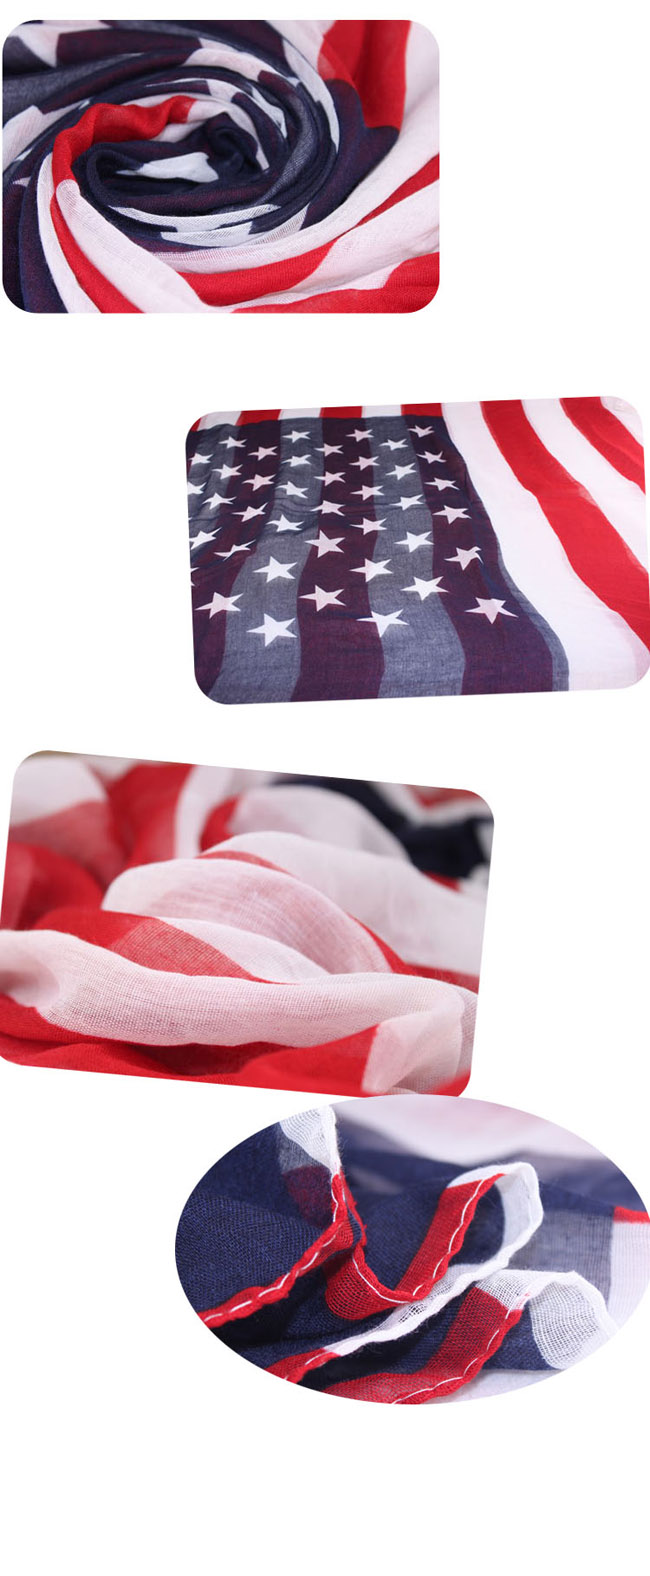 new style of USA flag